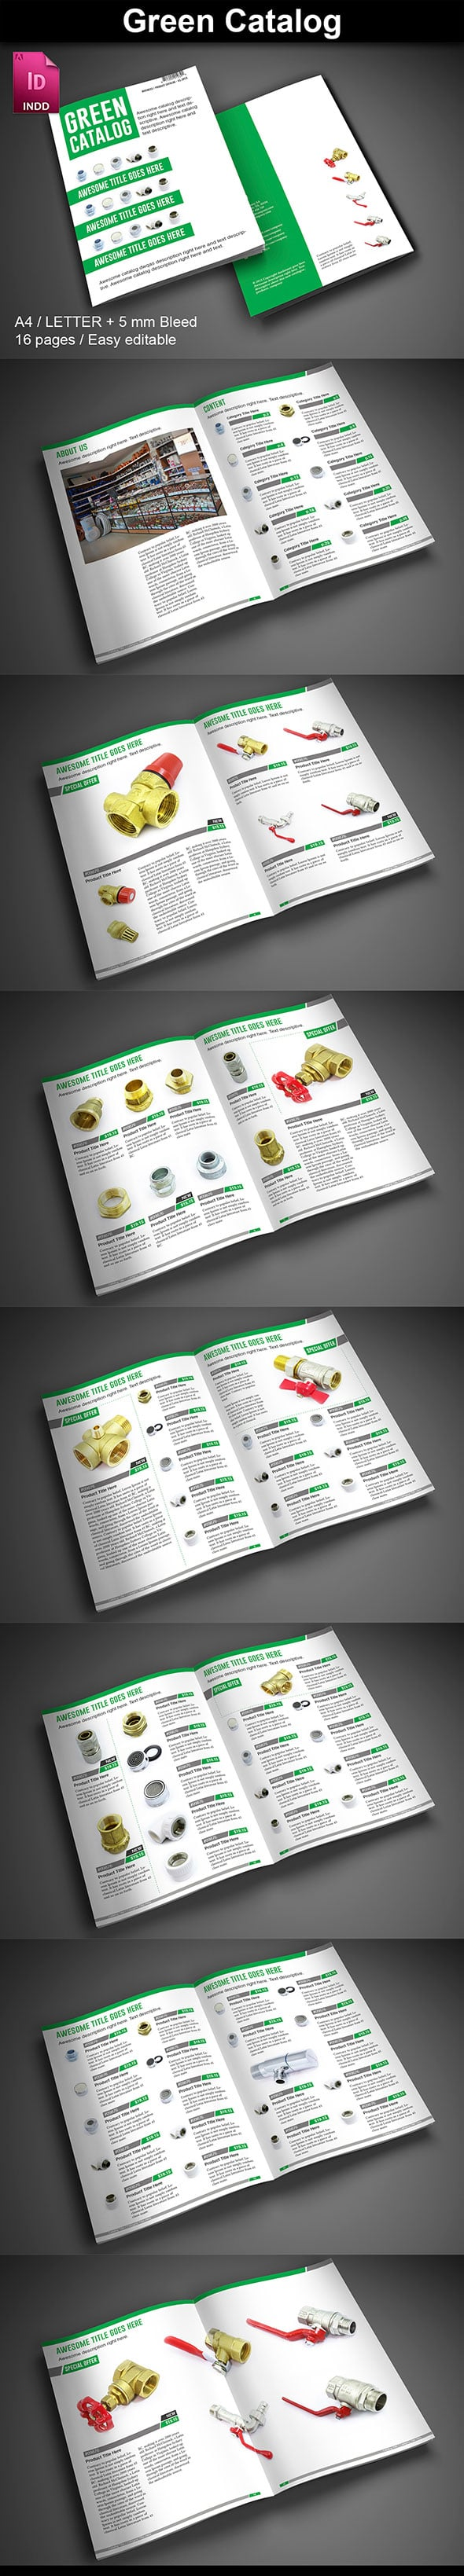 15  InDesign Product Catalogs - just $19 - 03 GreenCatalog ImagePreview2